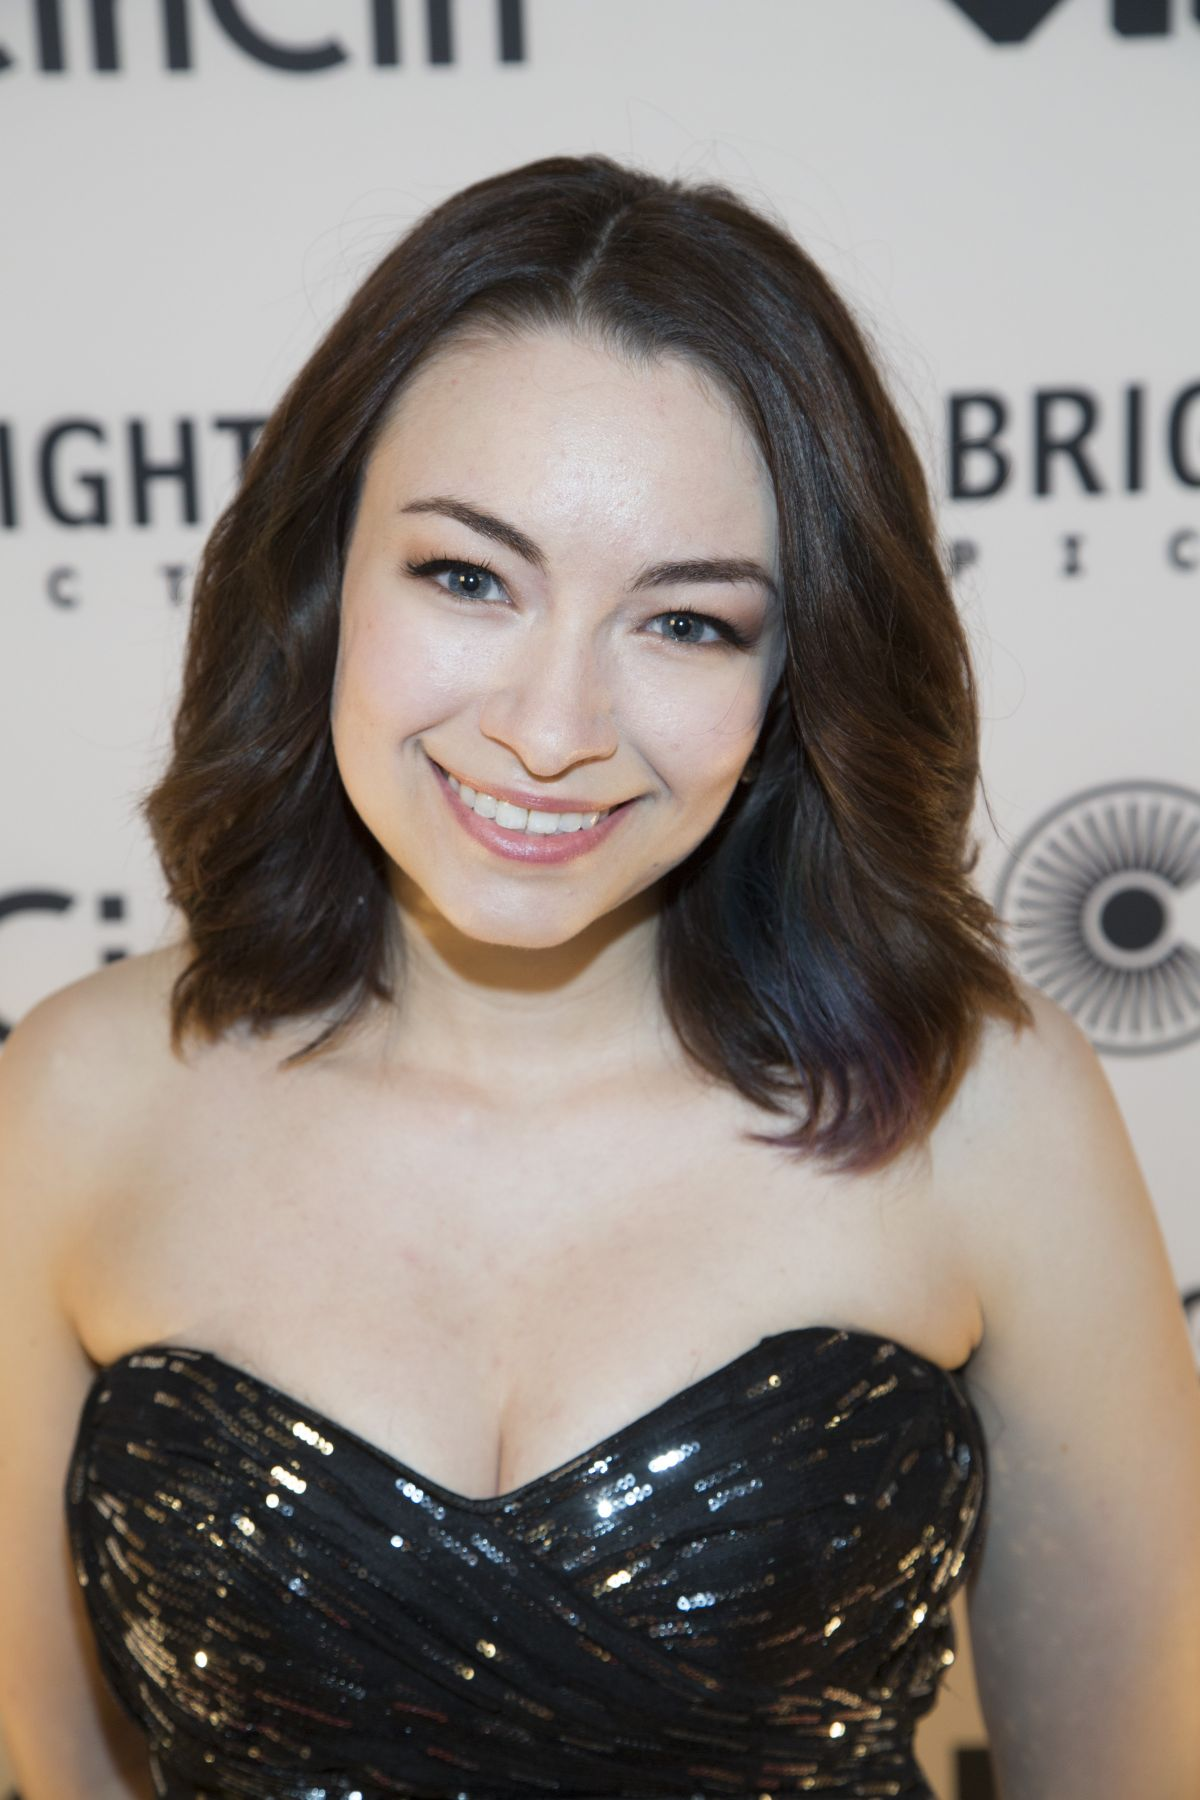 JODELLE FERLAND at Brightlight Pictures Red Carpet Party ... Vera Farmiga Instagram